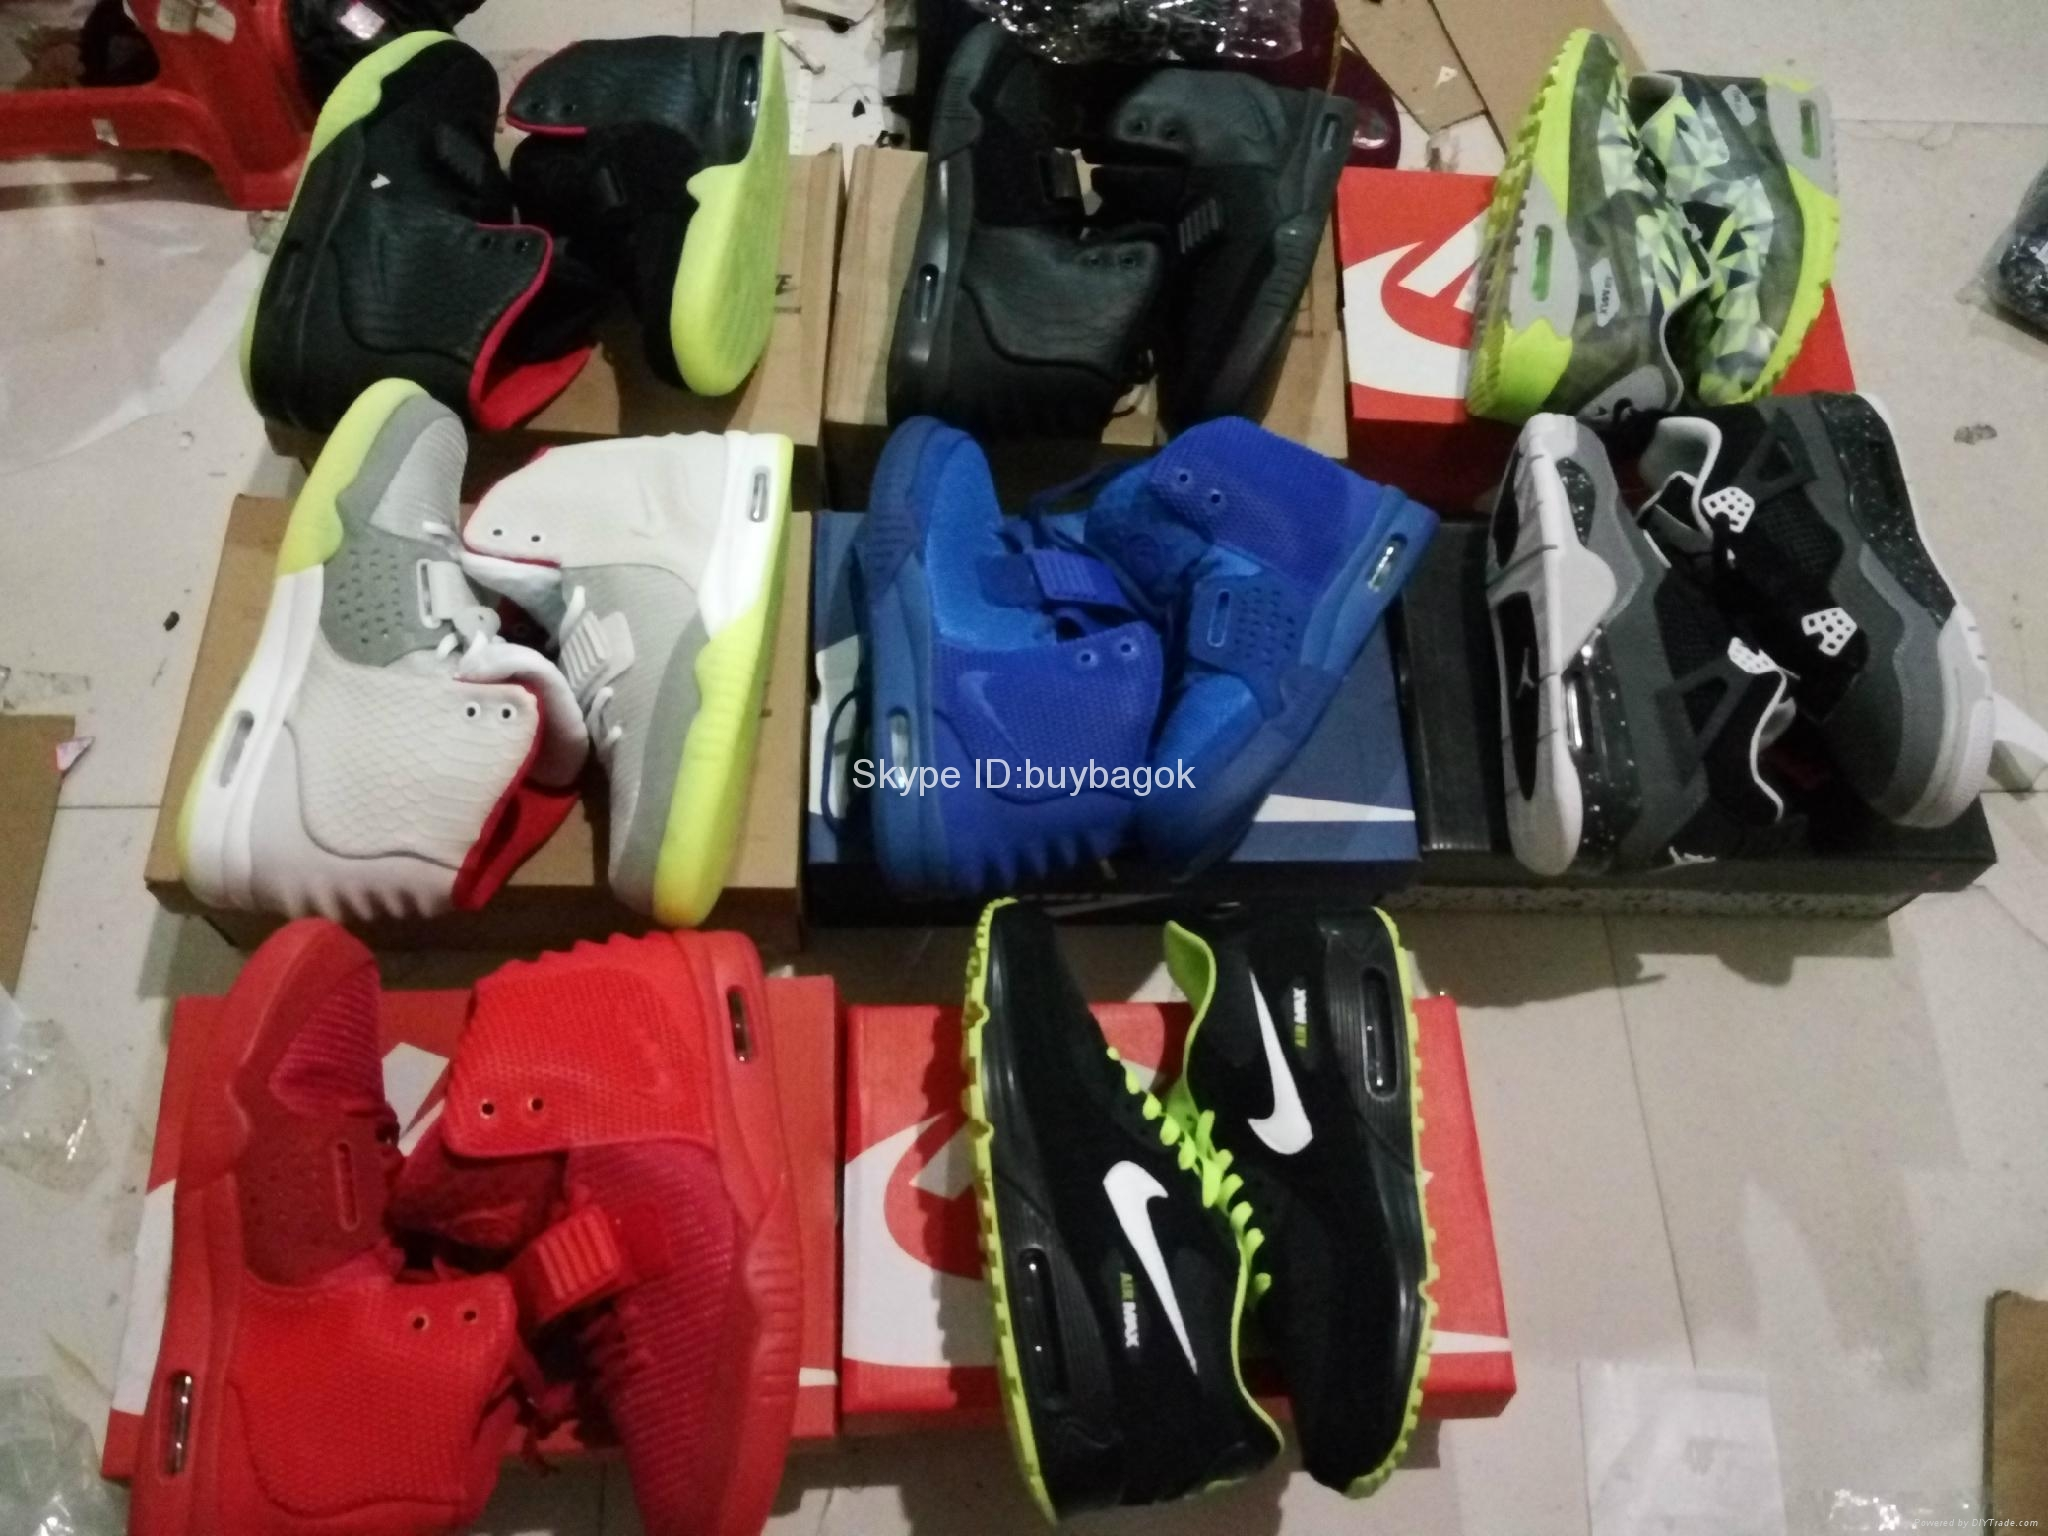 an overview of nikes plant in china Nike subcontractors employ nearly 500,000 workers in plants in indonesia, china and vietnam time visited nike plants in china and vietnam recently and found them to be modern, clean, well lighted and ventilated.